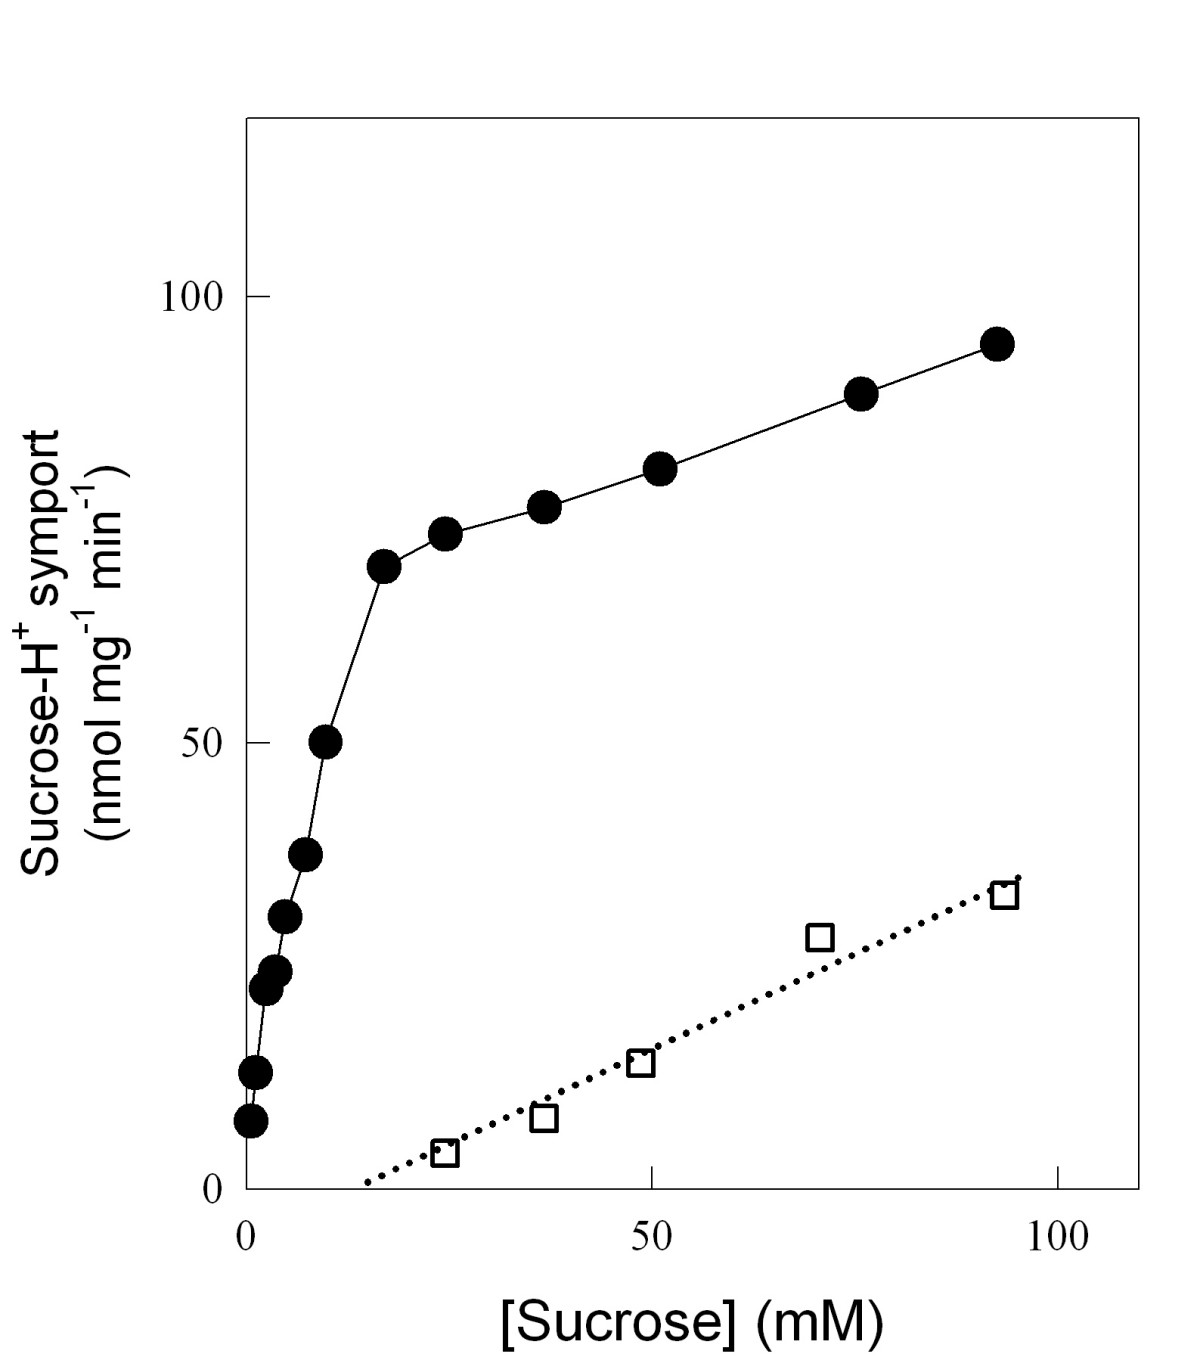 http://static-content.springer.com/image/art%3A10.1186%2F1475-2859-7-4/MediaObjects/12934_2007_Article_286_Fig1_HTML.jpg